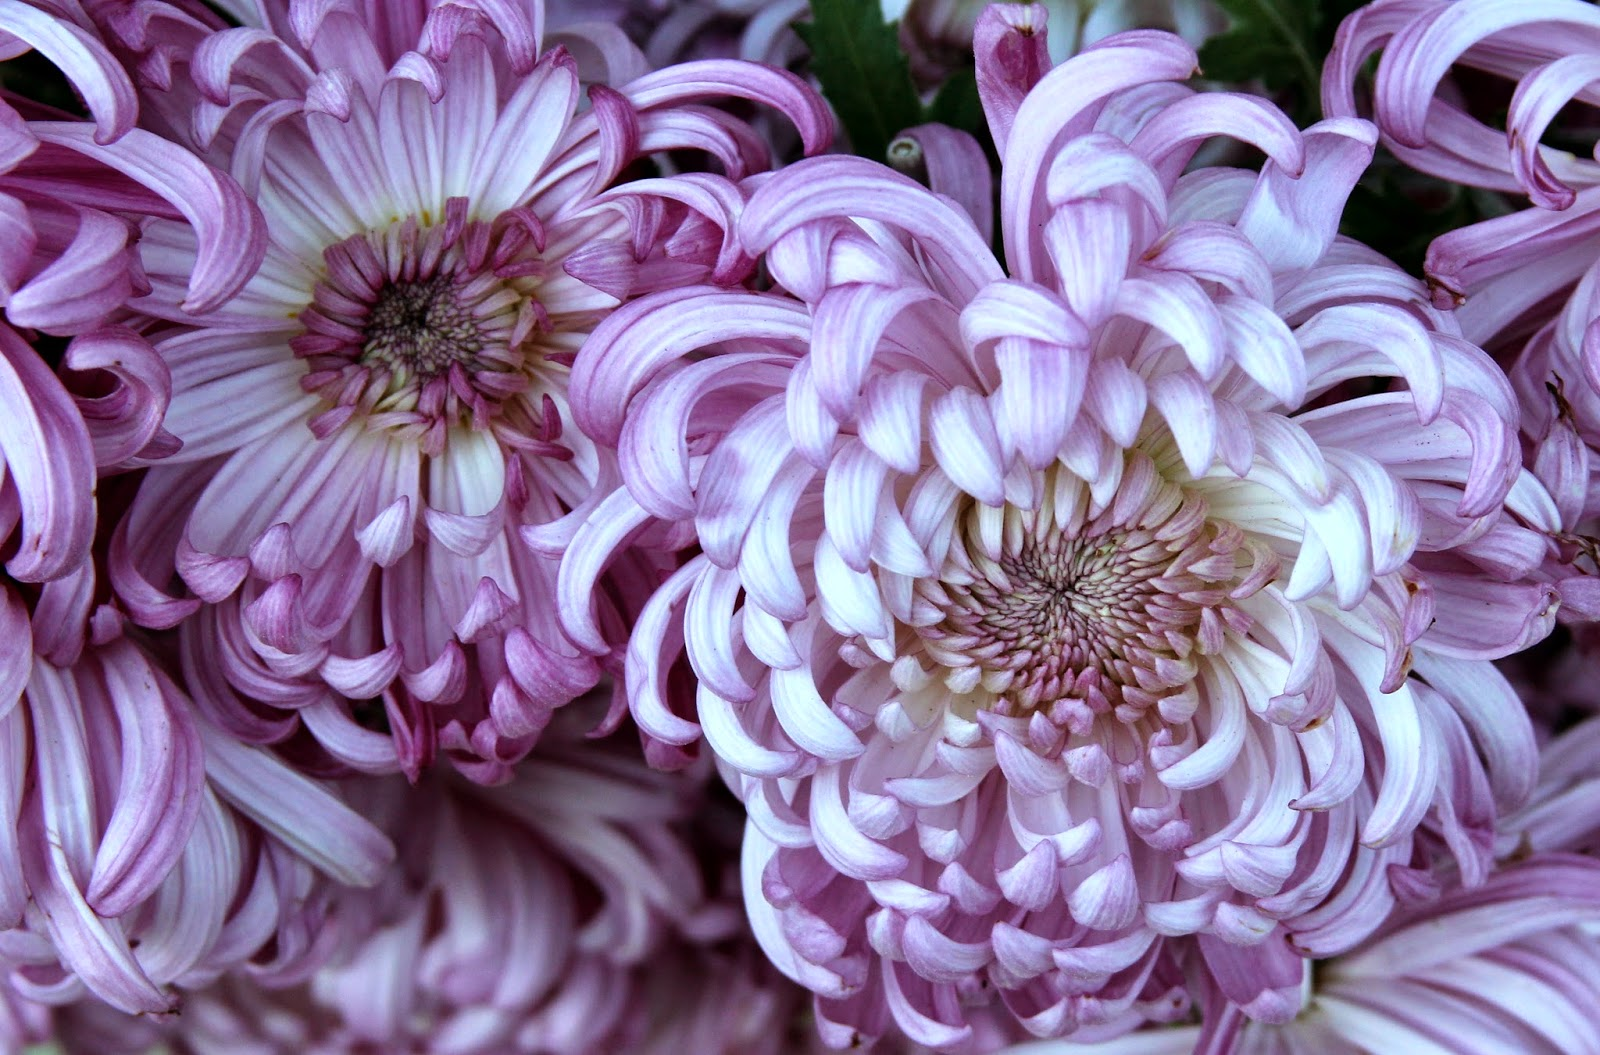 Chrysanthemums long lasting in the vase for fall arrangements it is a strong upright grower and produces many flowers arrange when centers are still in tight bud they will completely unfold producing a huge floret reviewsmspy